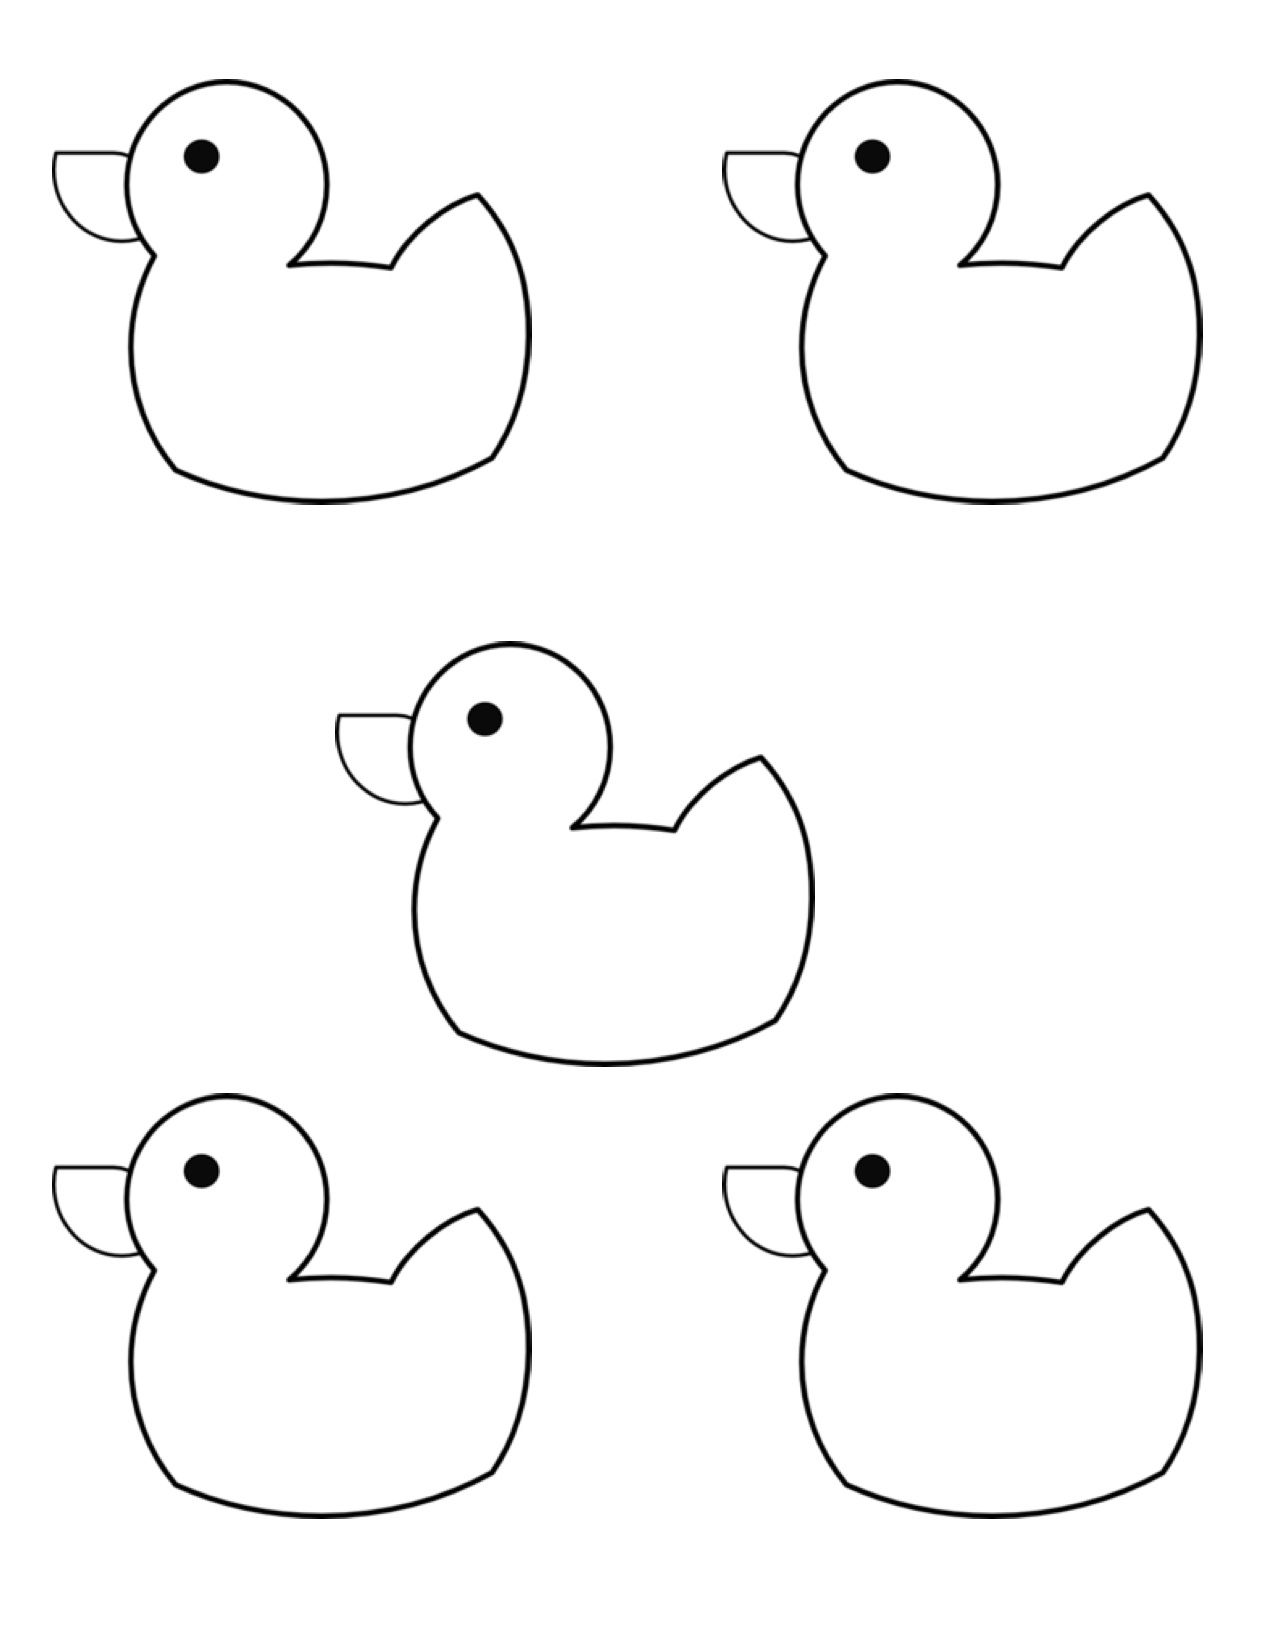 10 little rubber ducks inspiration